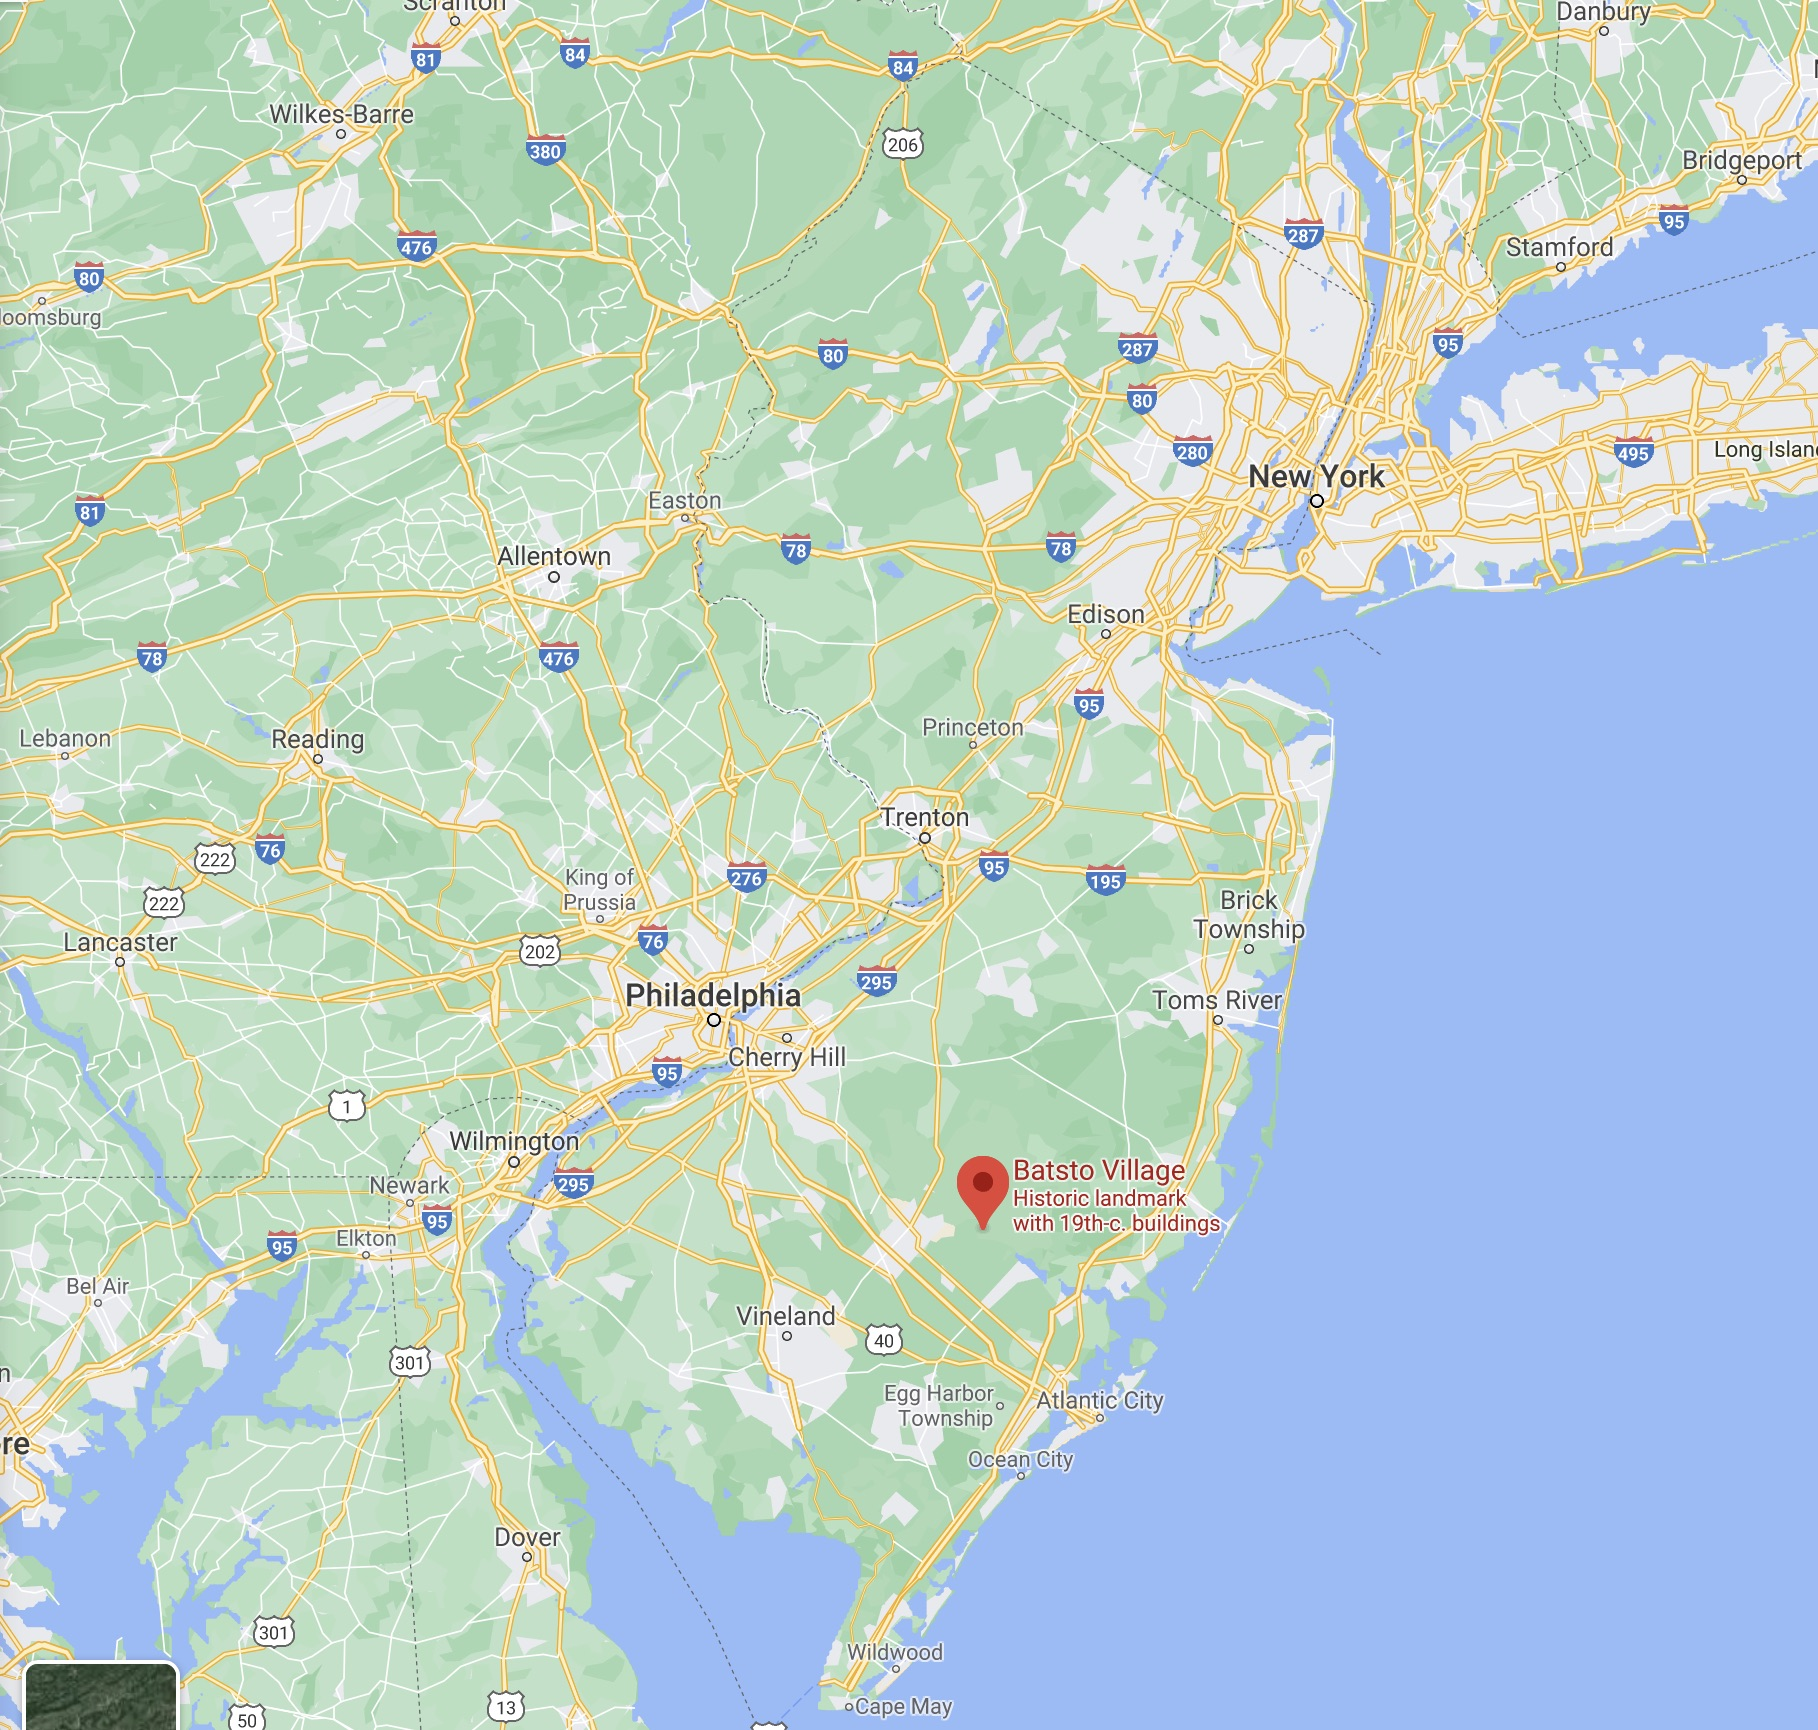 Map of New Jersey with red pin in location of Batsto Village.